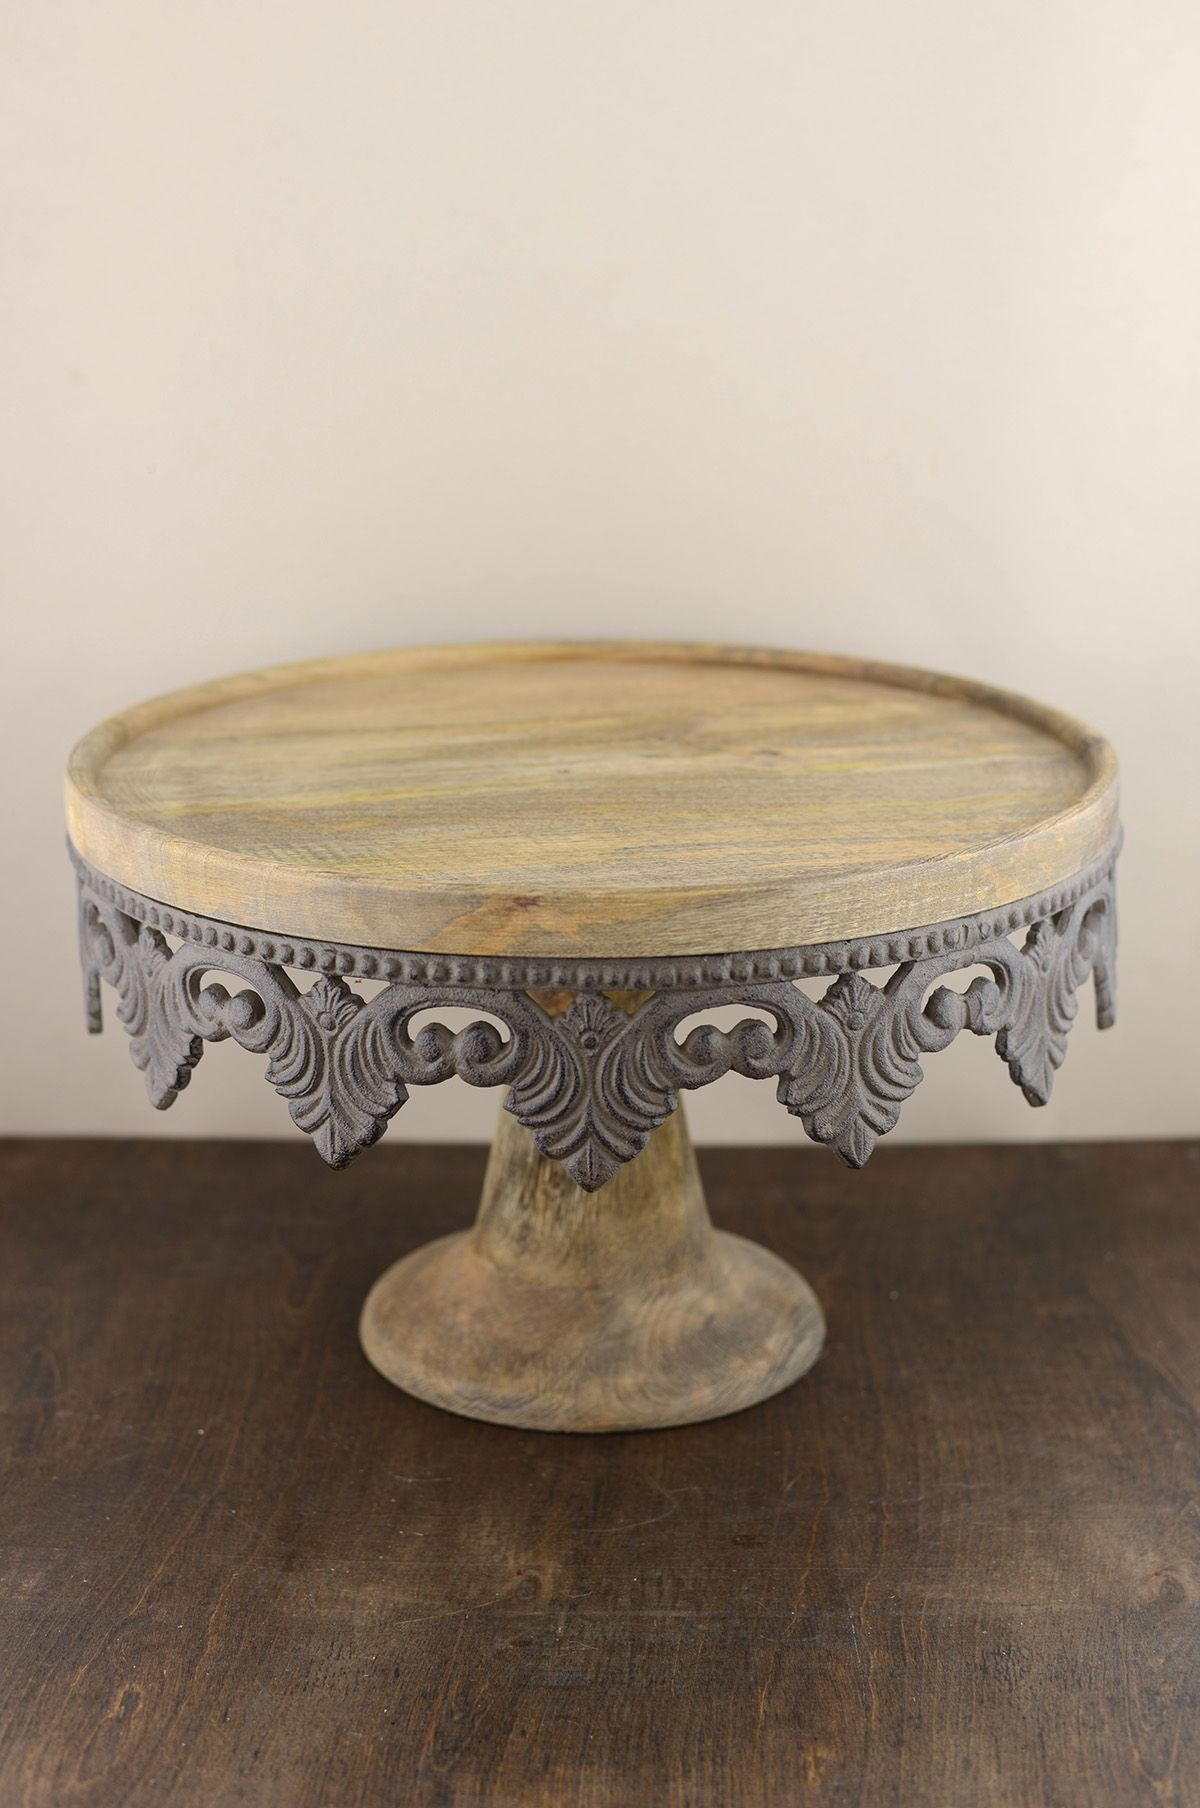 Wood cake stand in